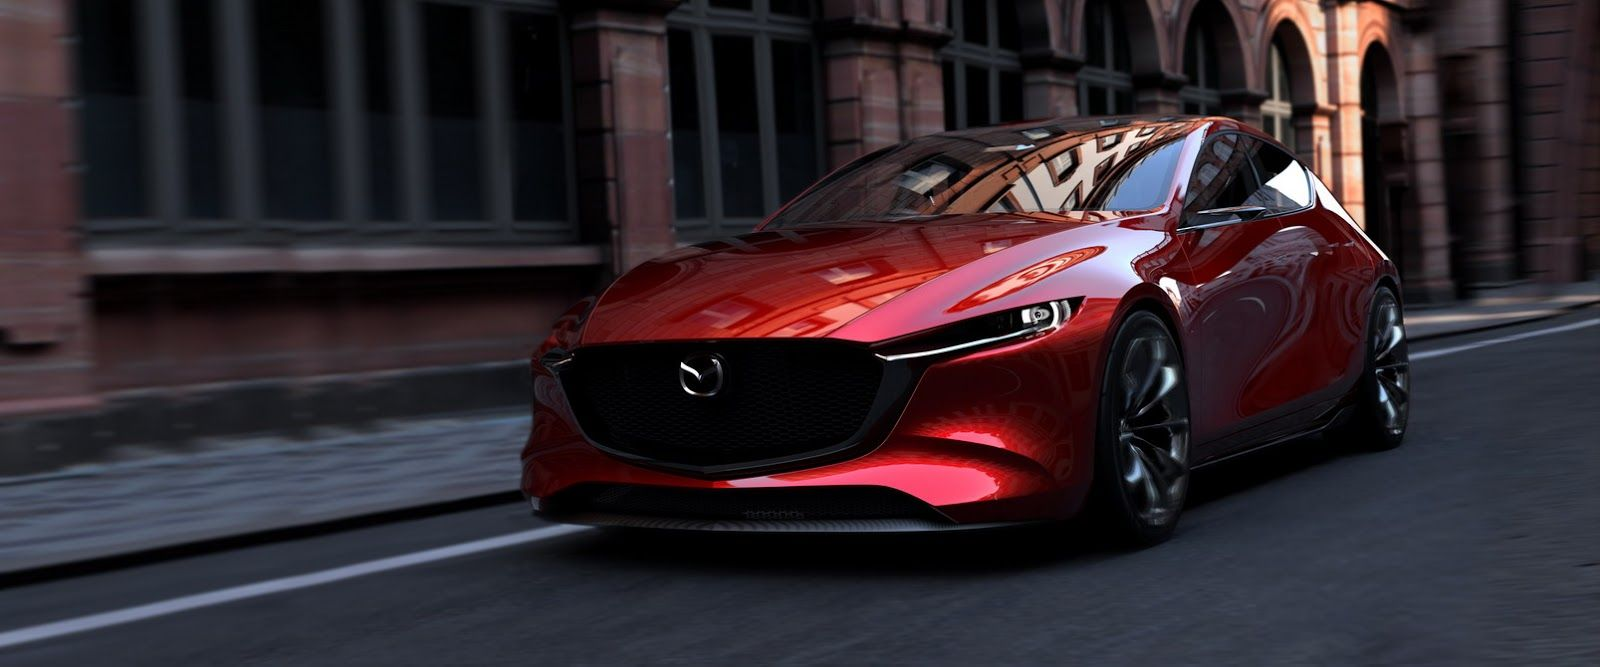 Mazda Kai Concept Teases Next Mazda3 But Don T Get Your Hopes Too High Carscoops Mazda 3 Hatchback Mazda Cars Cheap Sports Cars